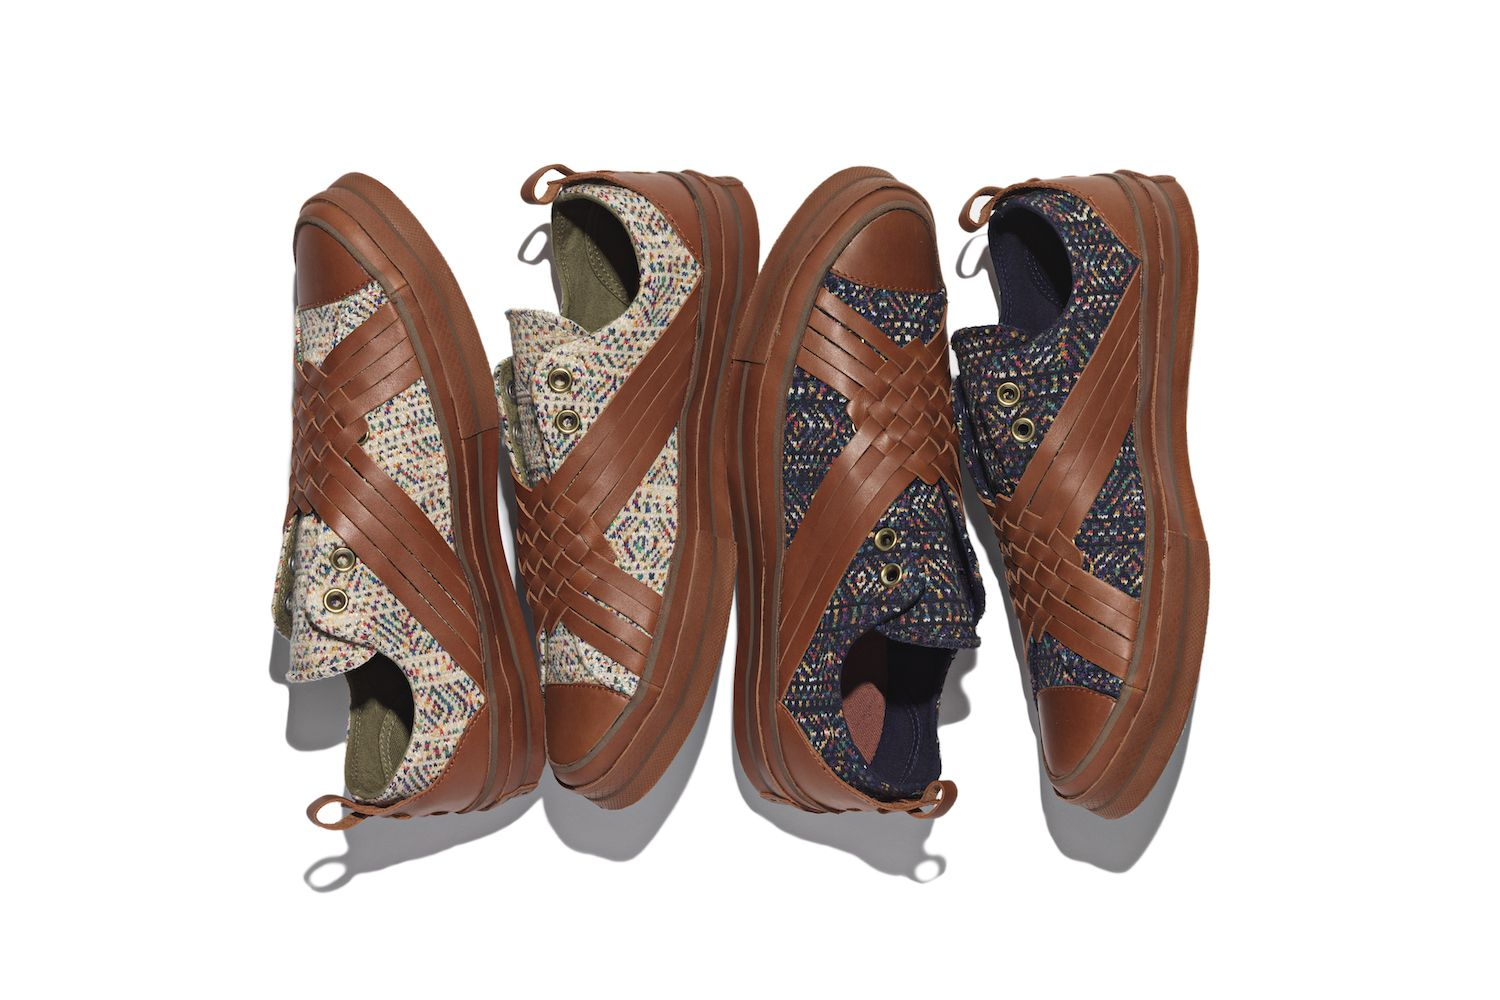 02d8c32890ad Nigel Cabourn and Converse Team up on New Chuck Taylor Pack. Premium  Italian knit label Missoni updates the classic Chuck Taylor All Star  70  with luxe ...